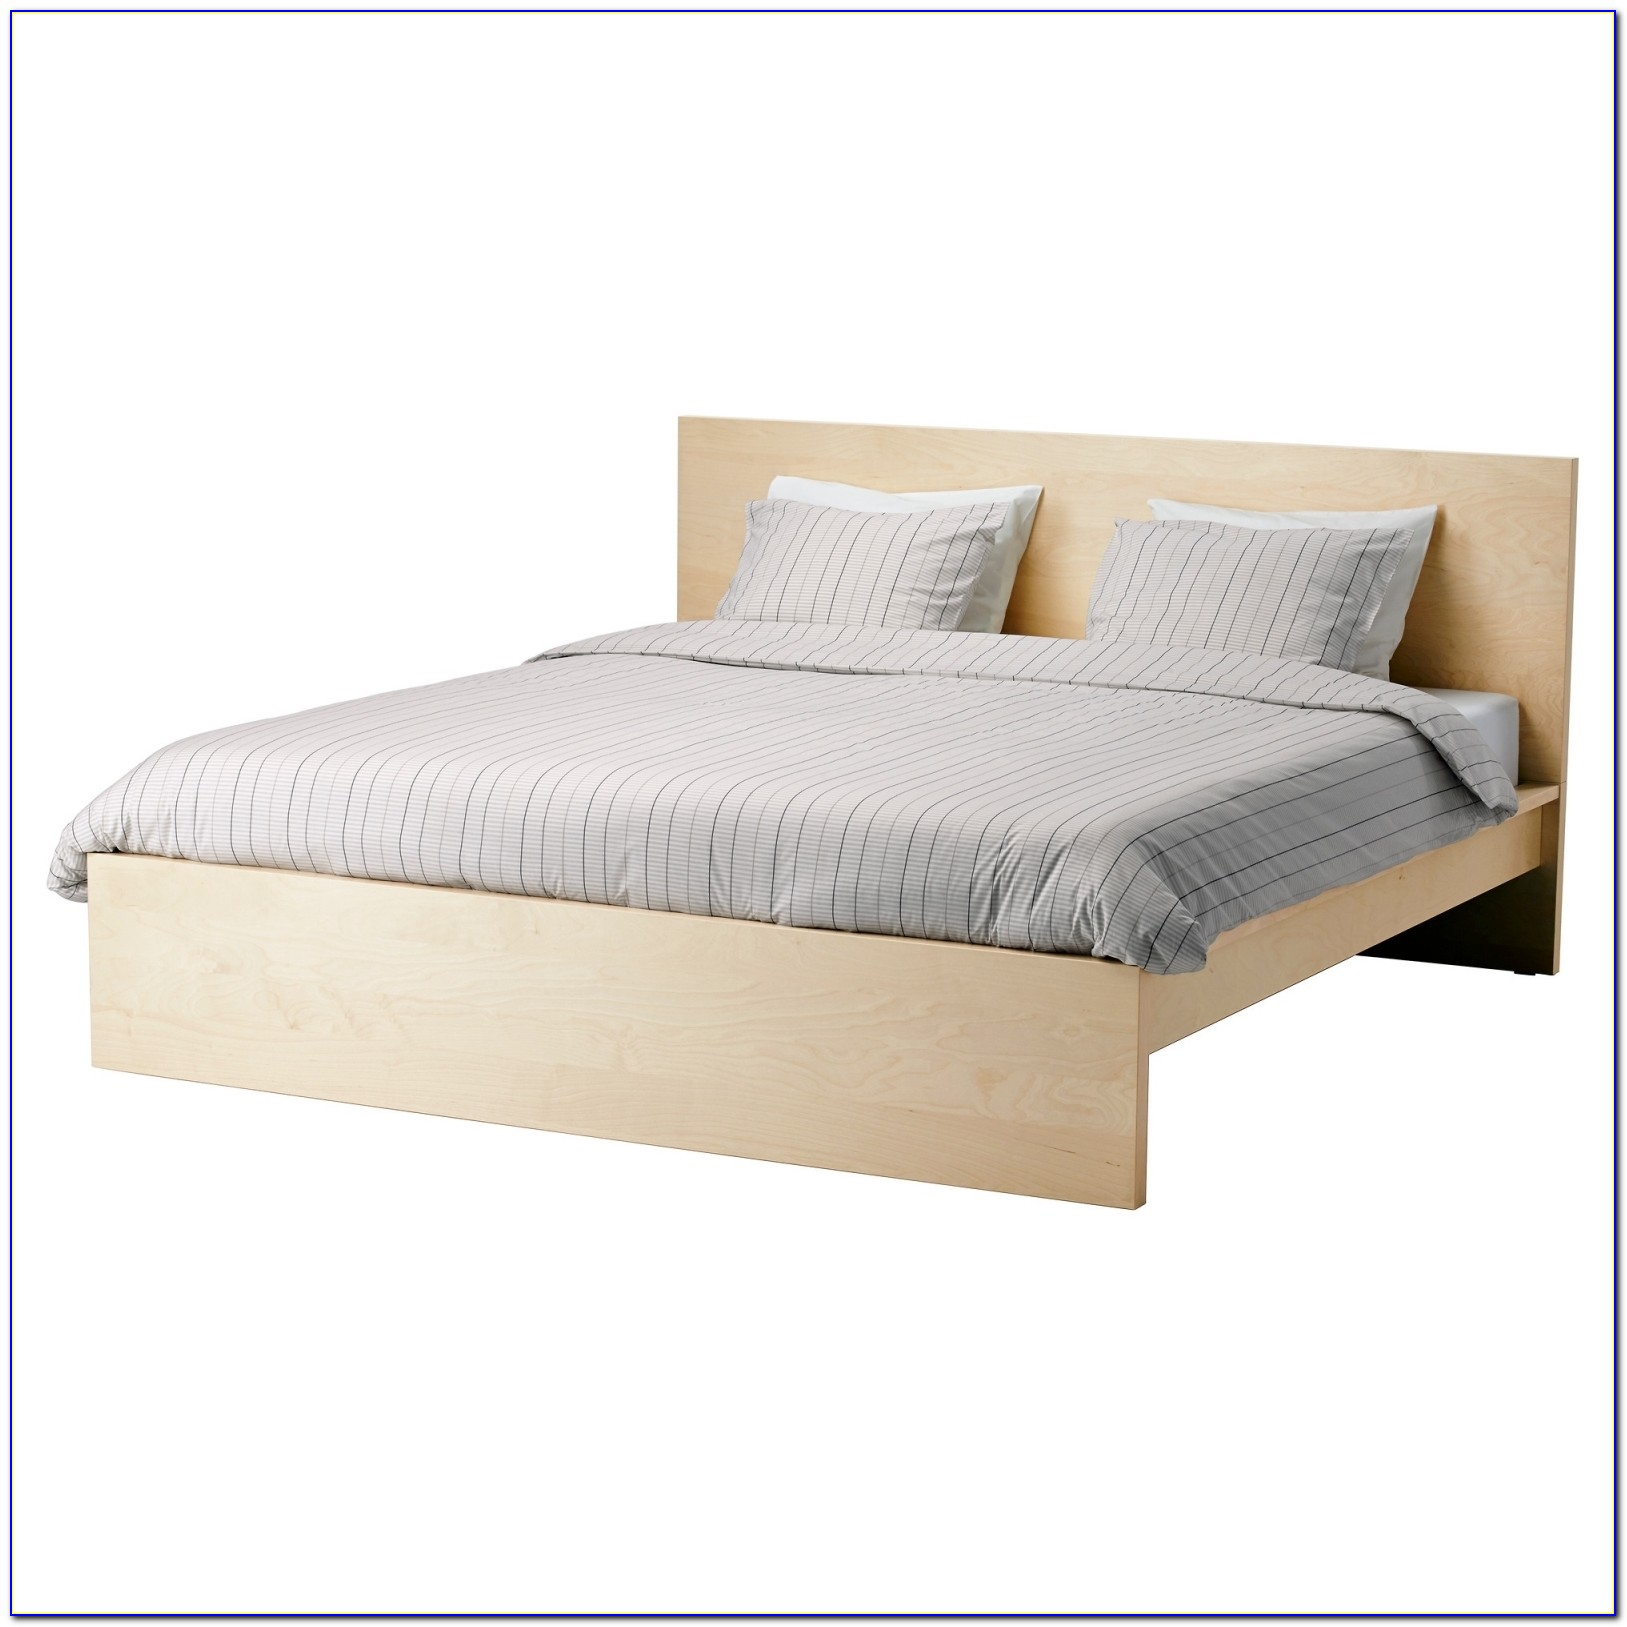 Full Queen And King Beds Ikea Ikea Aspelund Bed Frame Ikea Aspelund Bed Frame